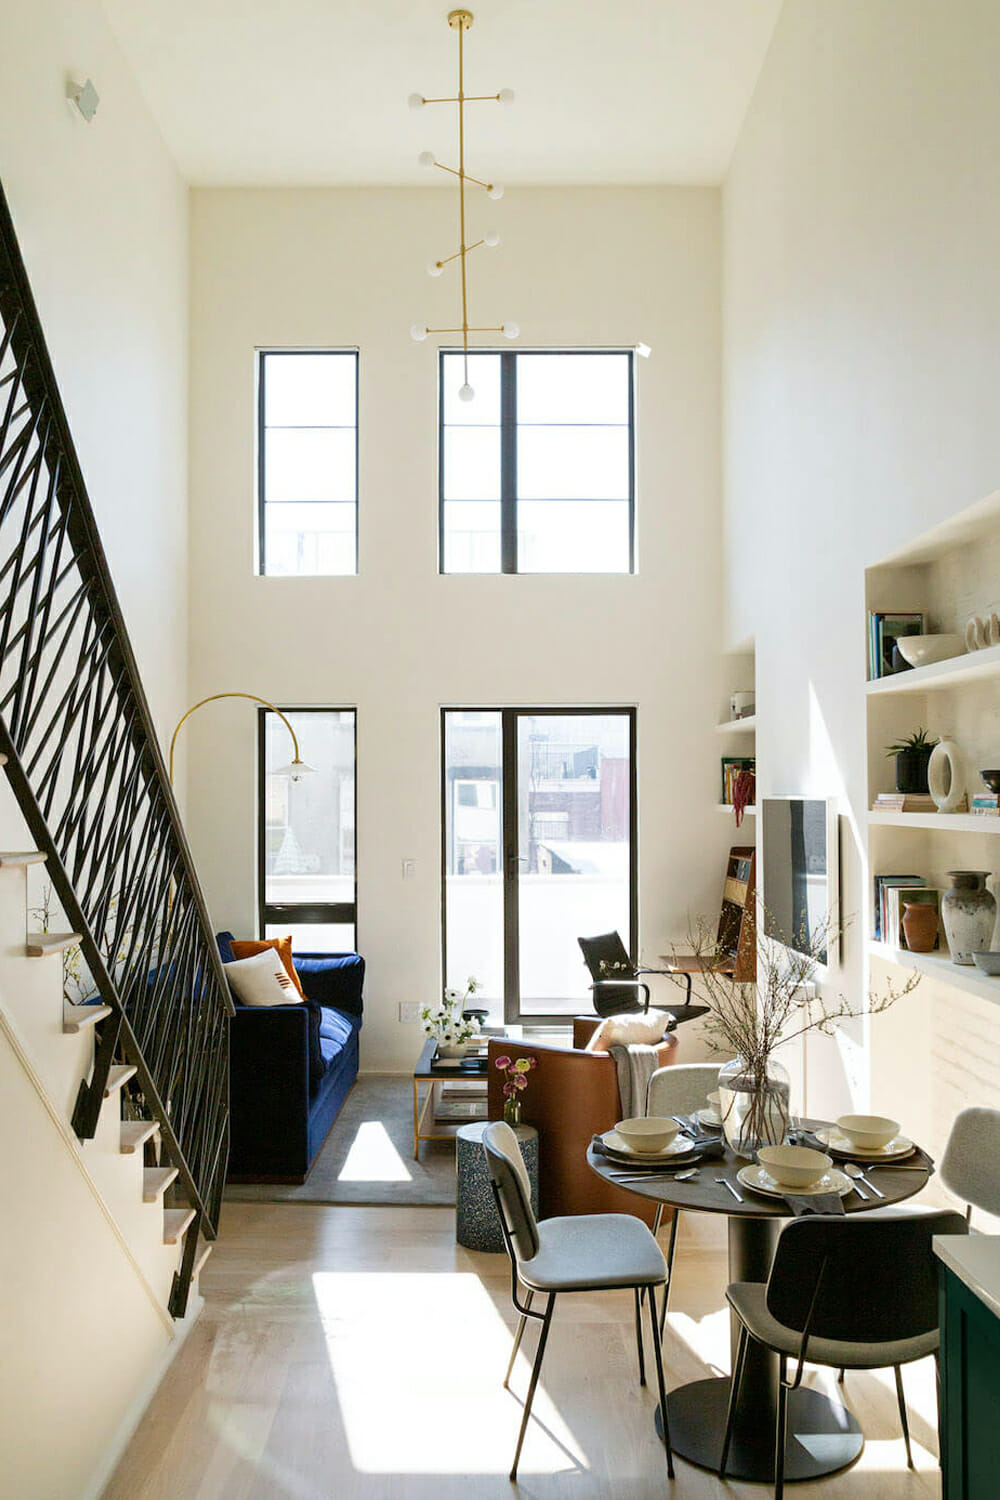 Living room with double height loft ceilings and gold lighting fixture